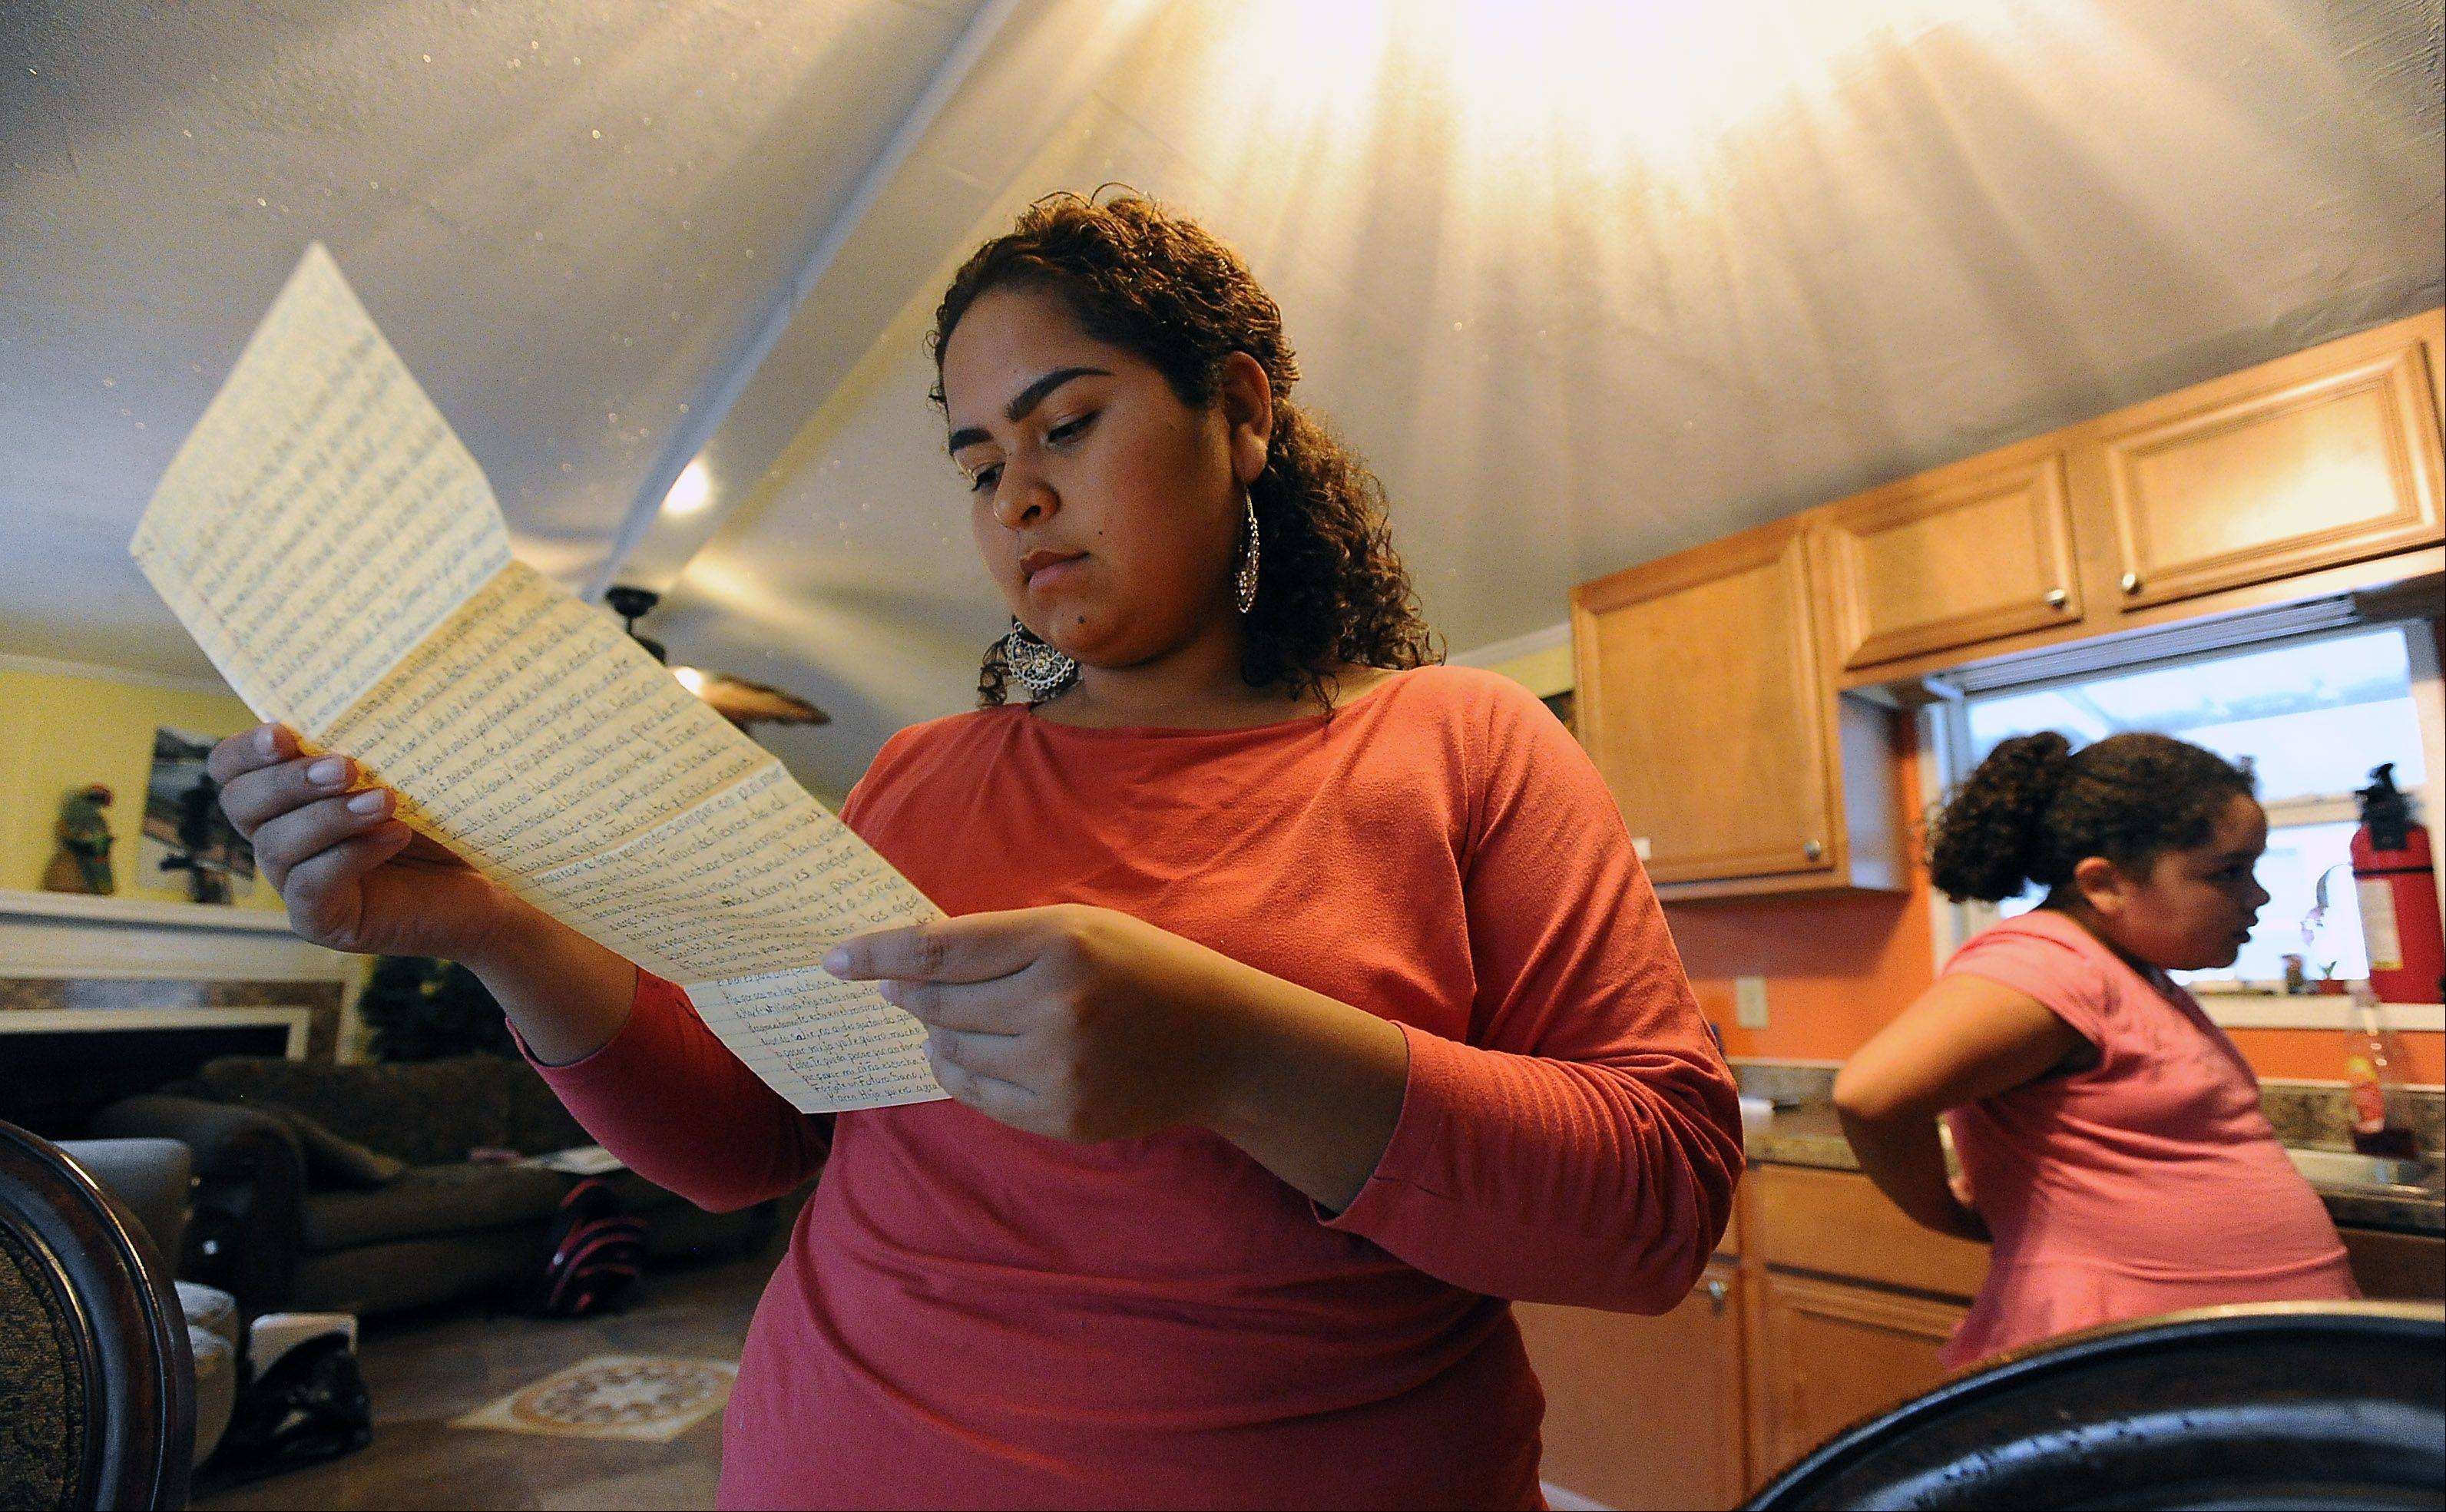 Karen Ramirez, 22, reads a letter from her father, Heriberto, who is in prison for killing their mother in 2011 in their Des Plaines-area home while Greta, 12, sat nearby.